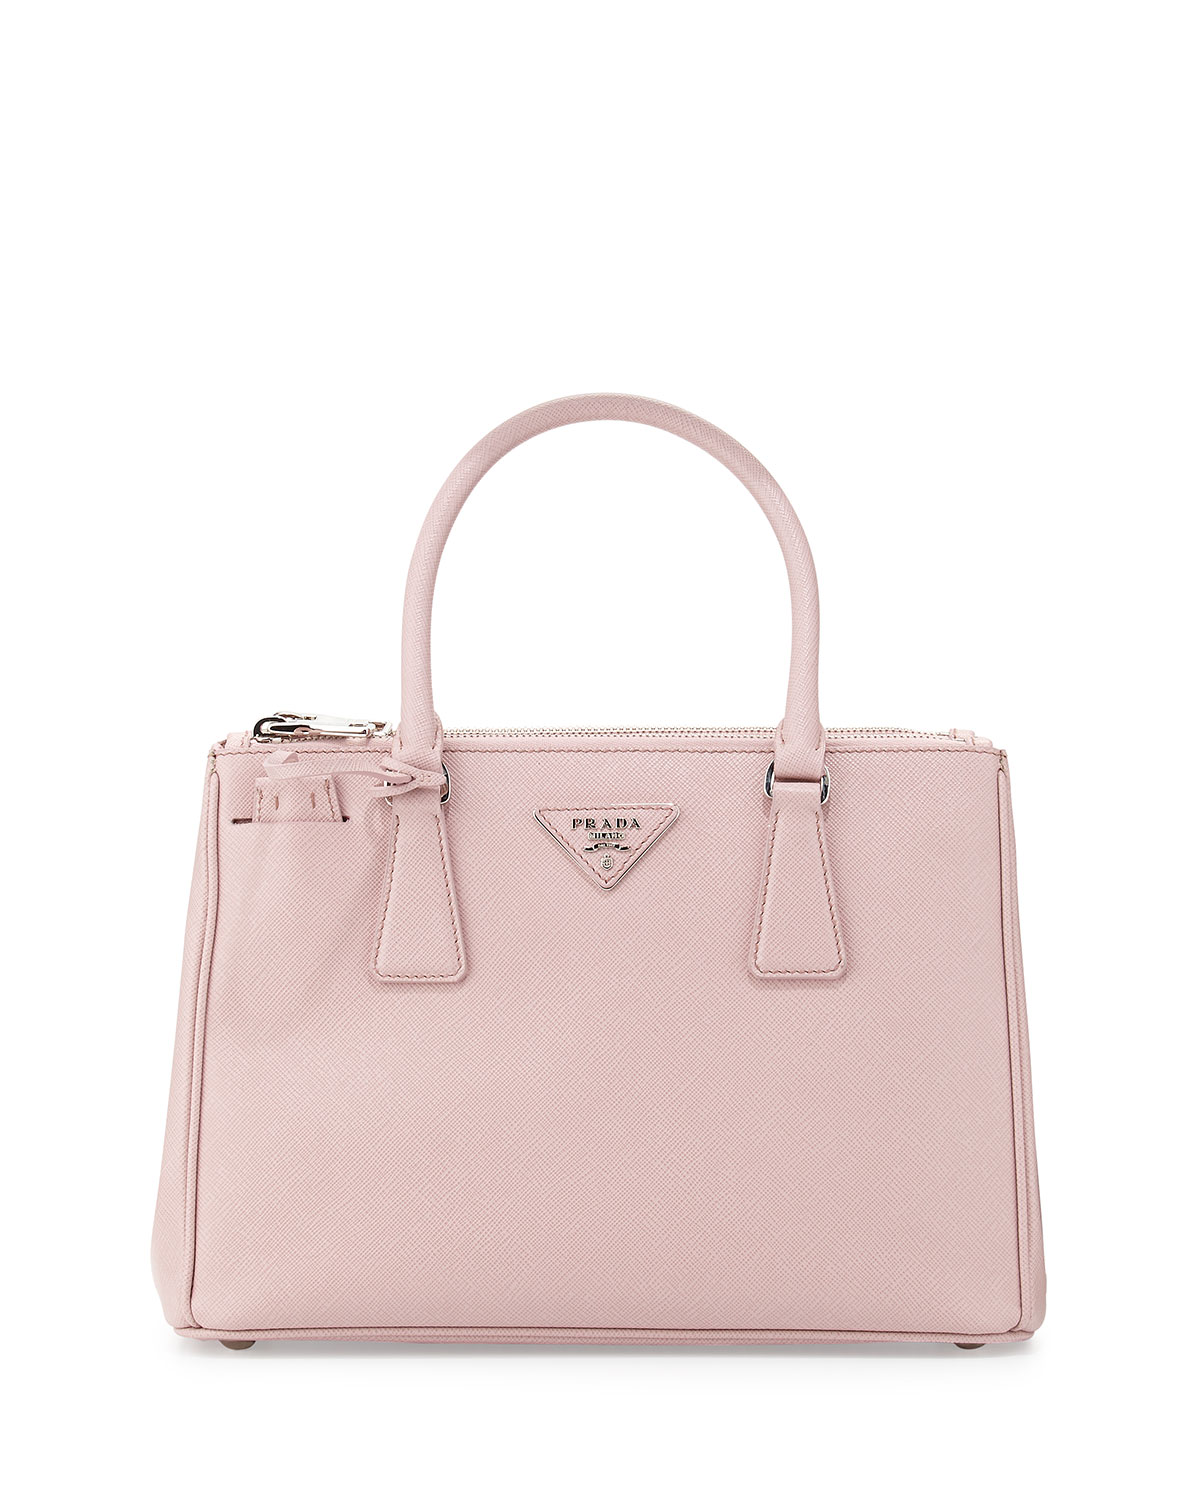 Prada Spring Summer 2015 Bag Collection Featuring Large